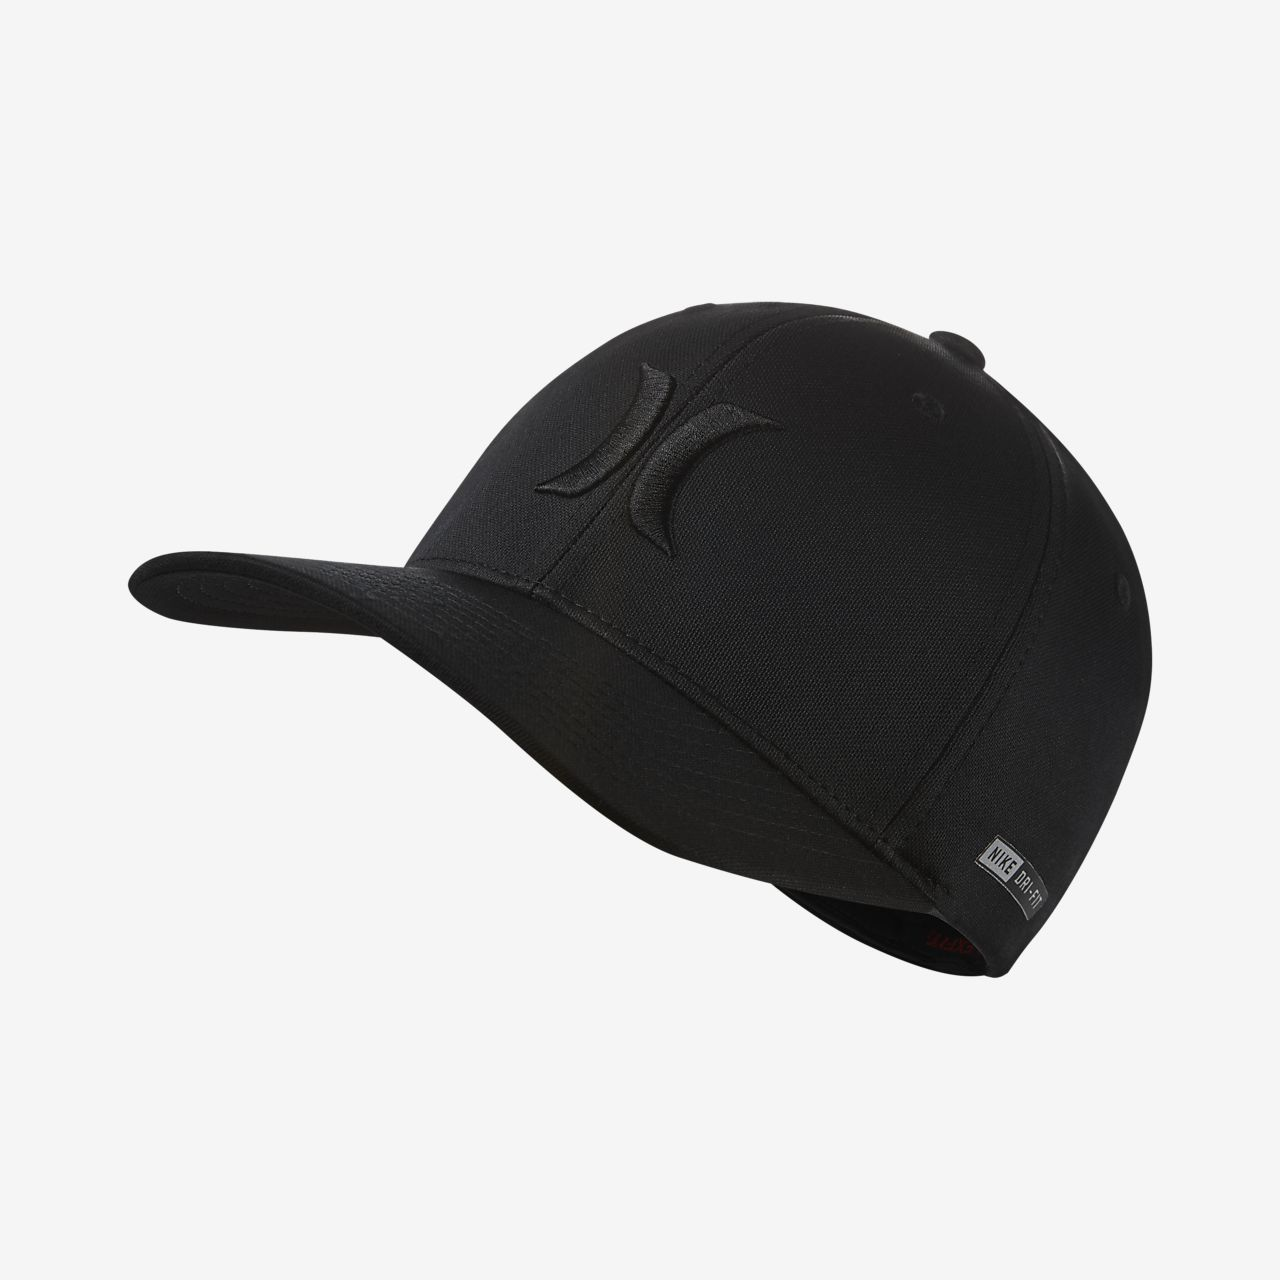 ... new arrivals hurley dri fit one and only mens fitted hat b35dc b0538  usa amazon nike ... 7db319283b80